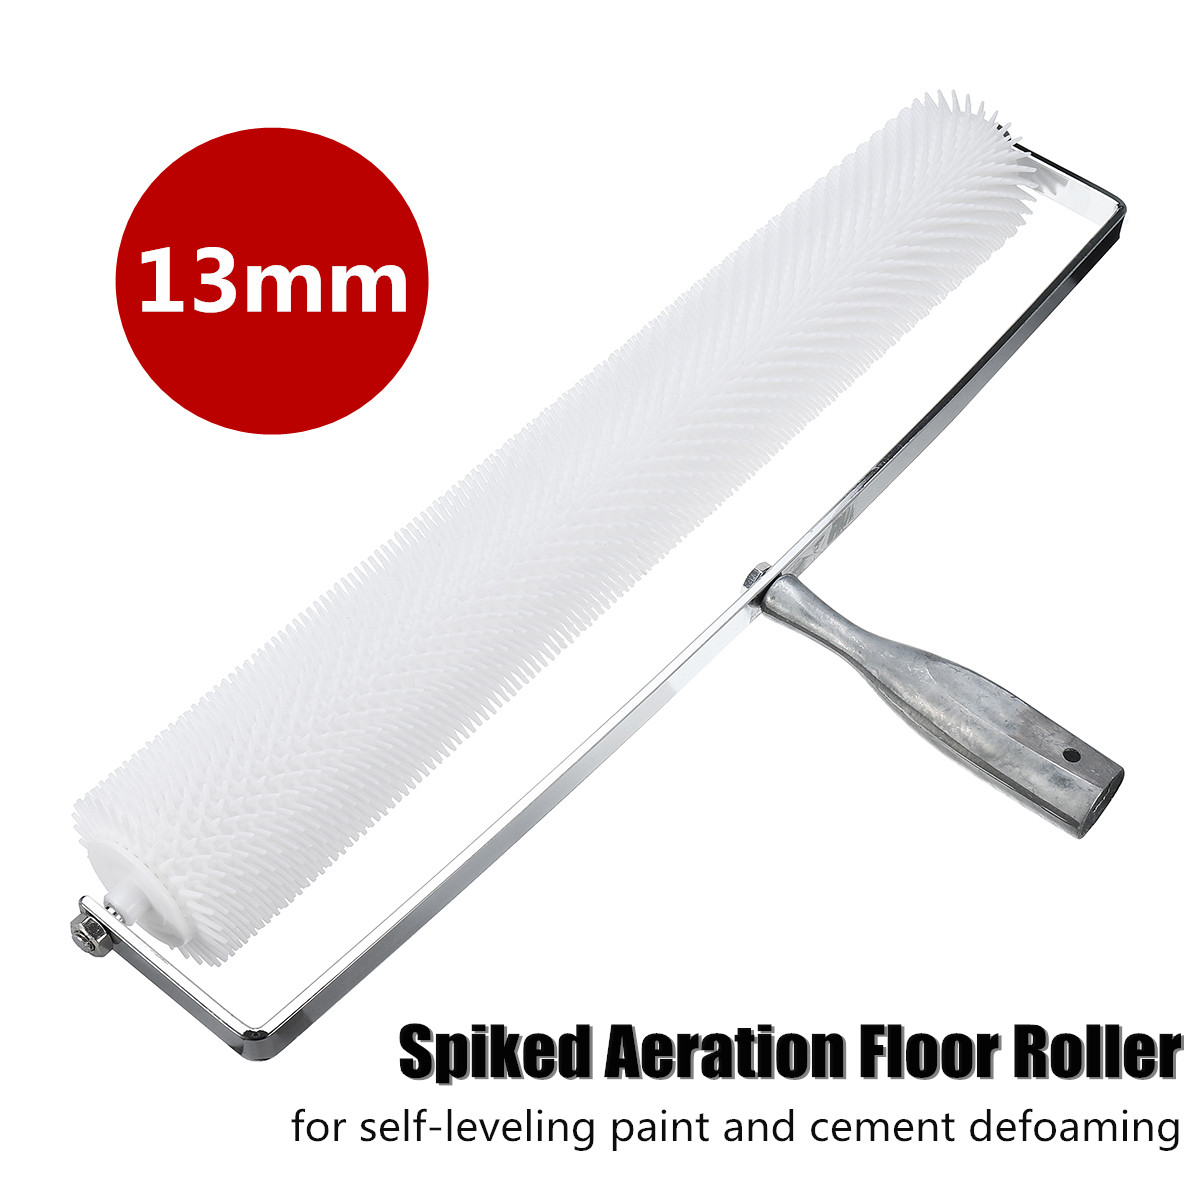 20 Inch Spiked Aeration Floor Roller Self Levelling Cement Defoaming Roller Screed Tools Accessories 13mm Home DIY Hand Tools20 Inch Spiked Aeration Floor Roller Self Levelling Cement Defoaming Roller Screed Tools Accessories 13mm Home DIY Hand Tools